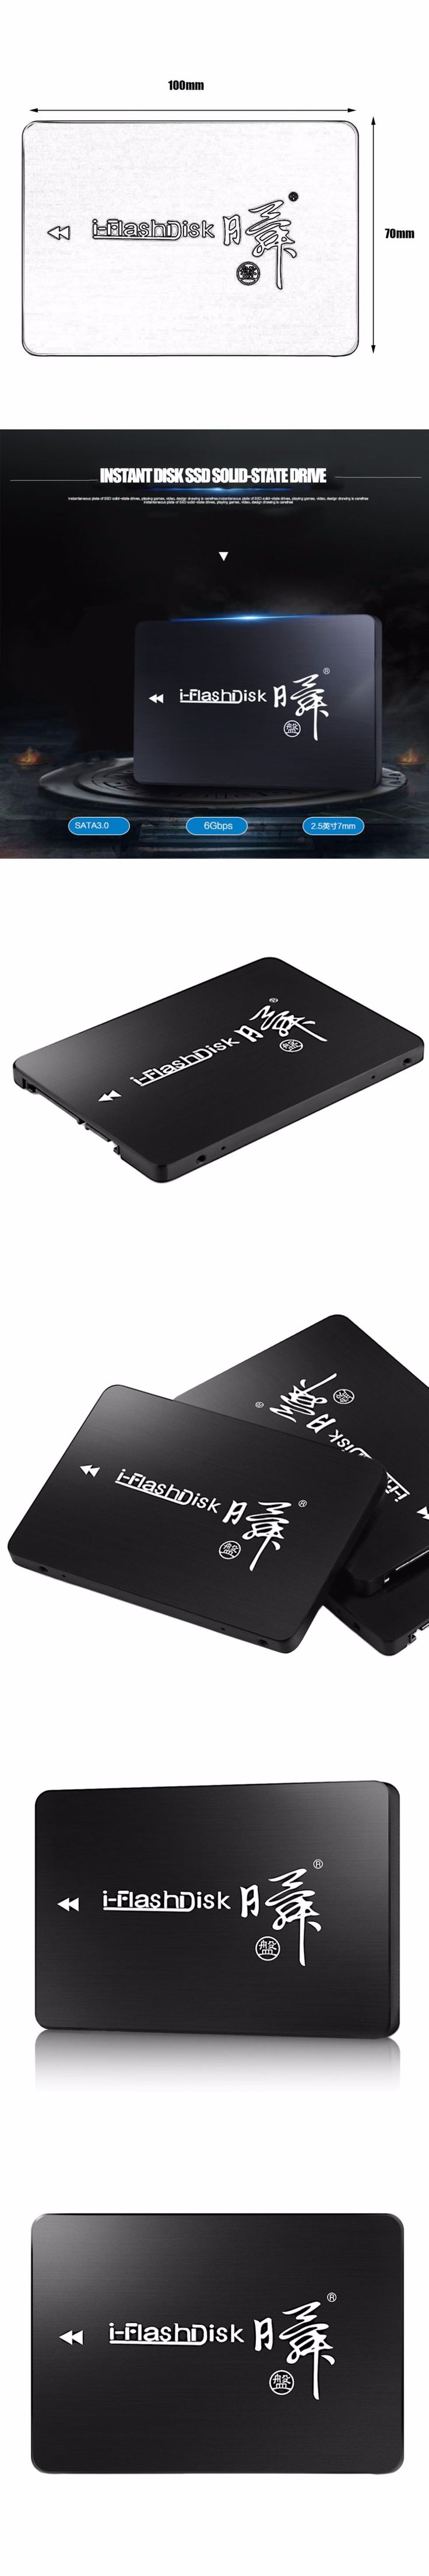 I-Flash Disk 120GB 2.5-Inch SSD SATA3 6GB/S High-Speed Transmission Without Cache Internal Hard Drive Light Anti Shock For pc